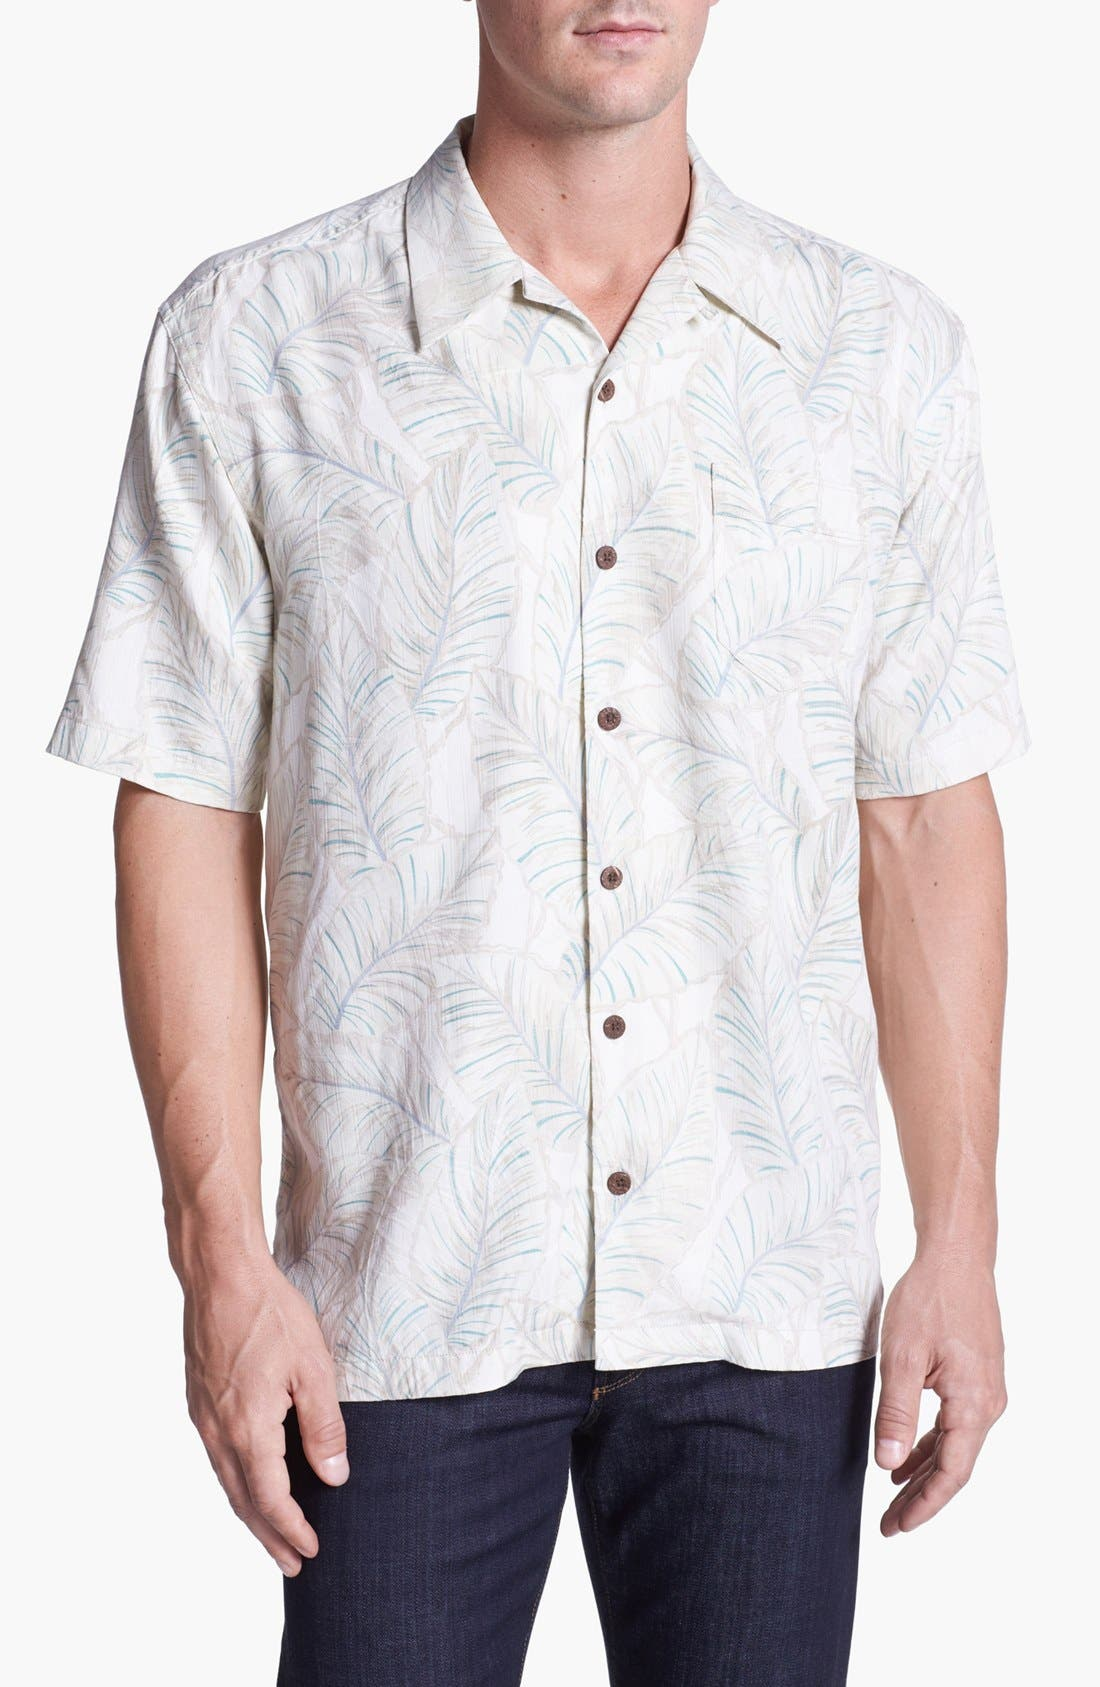 Main Image - Tommy Bahama 'Leaves of Arabia' Silk Campshirt